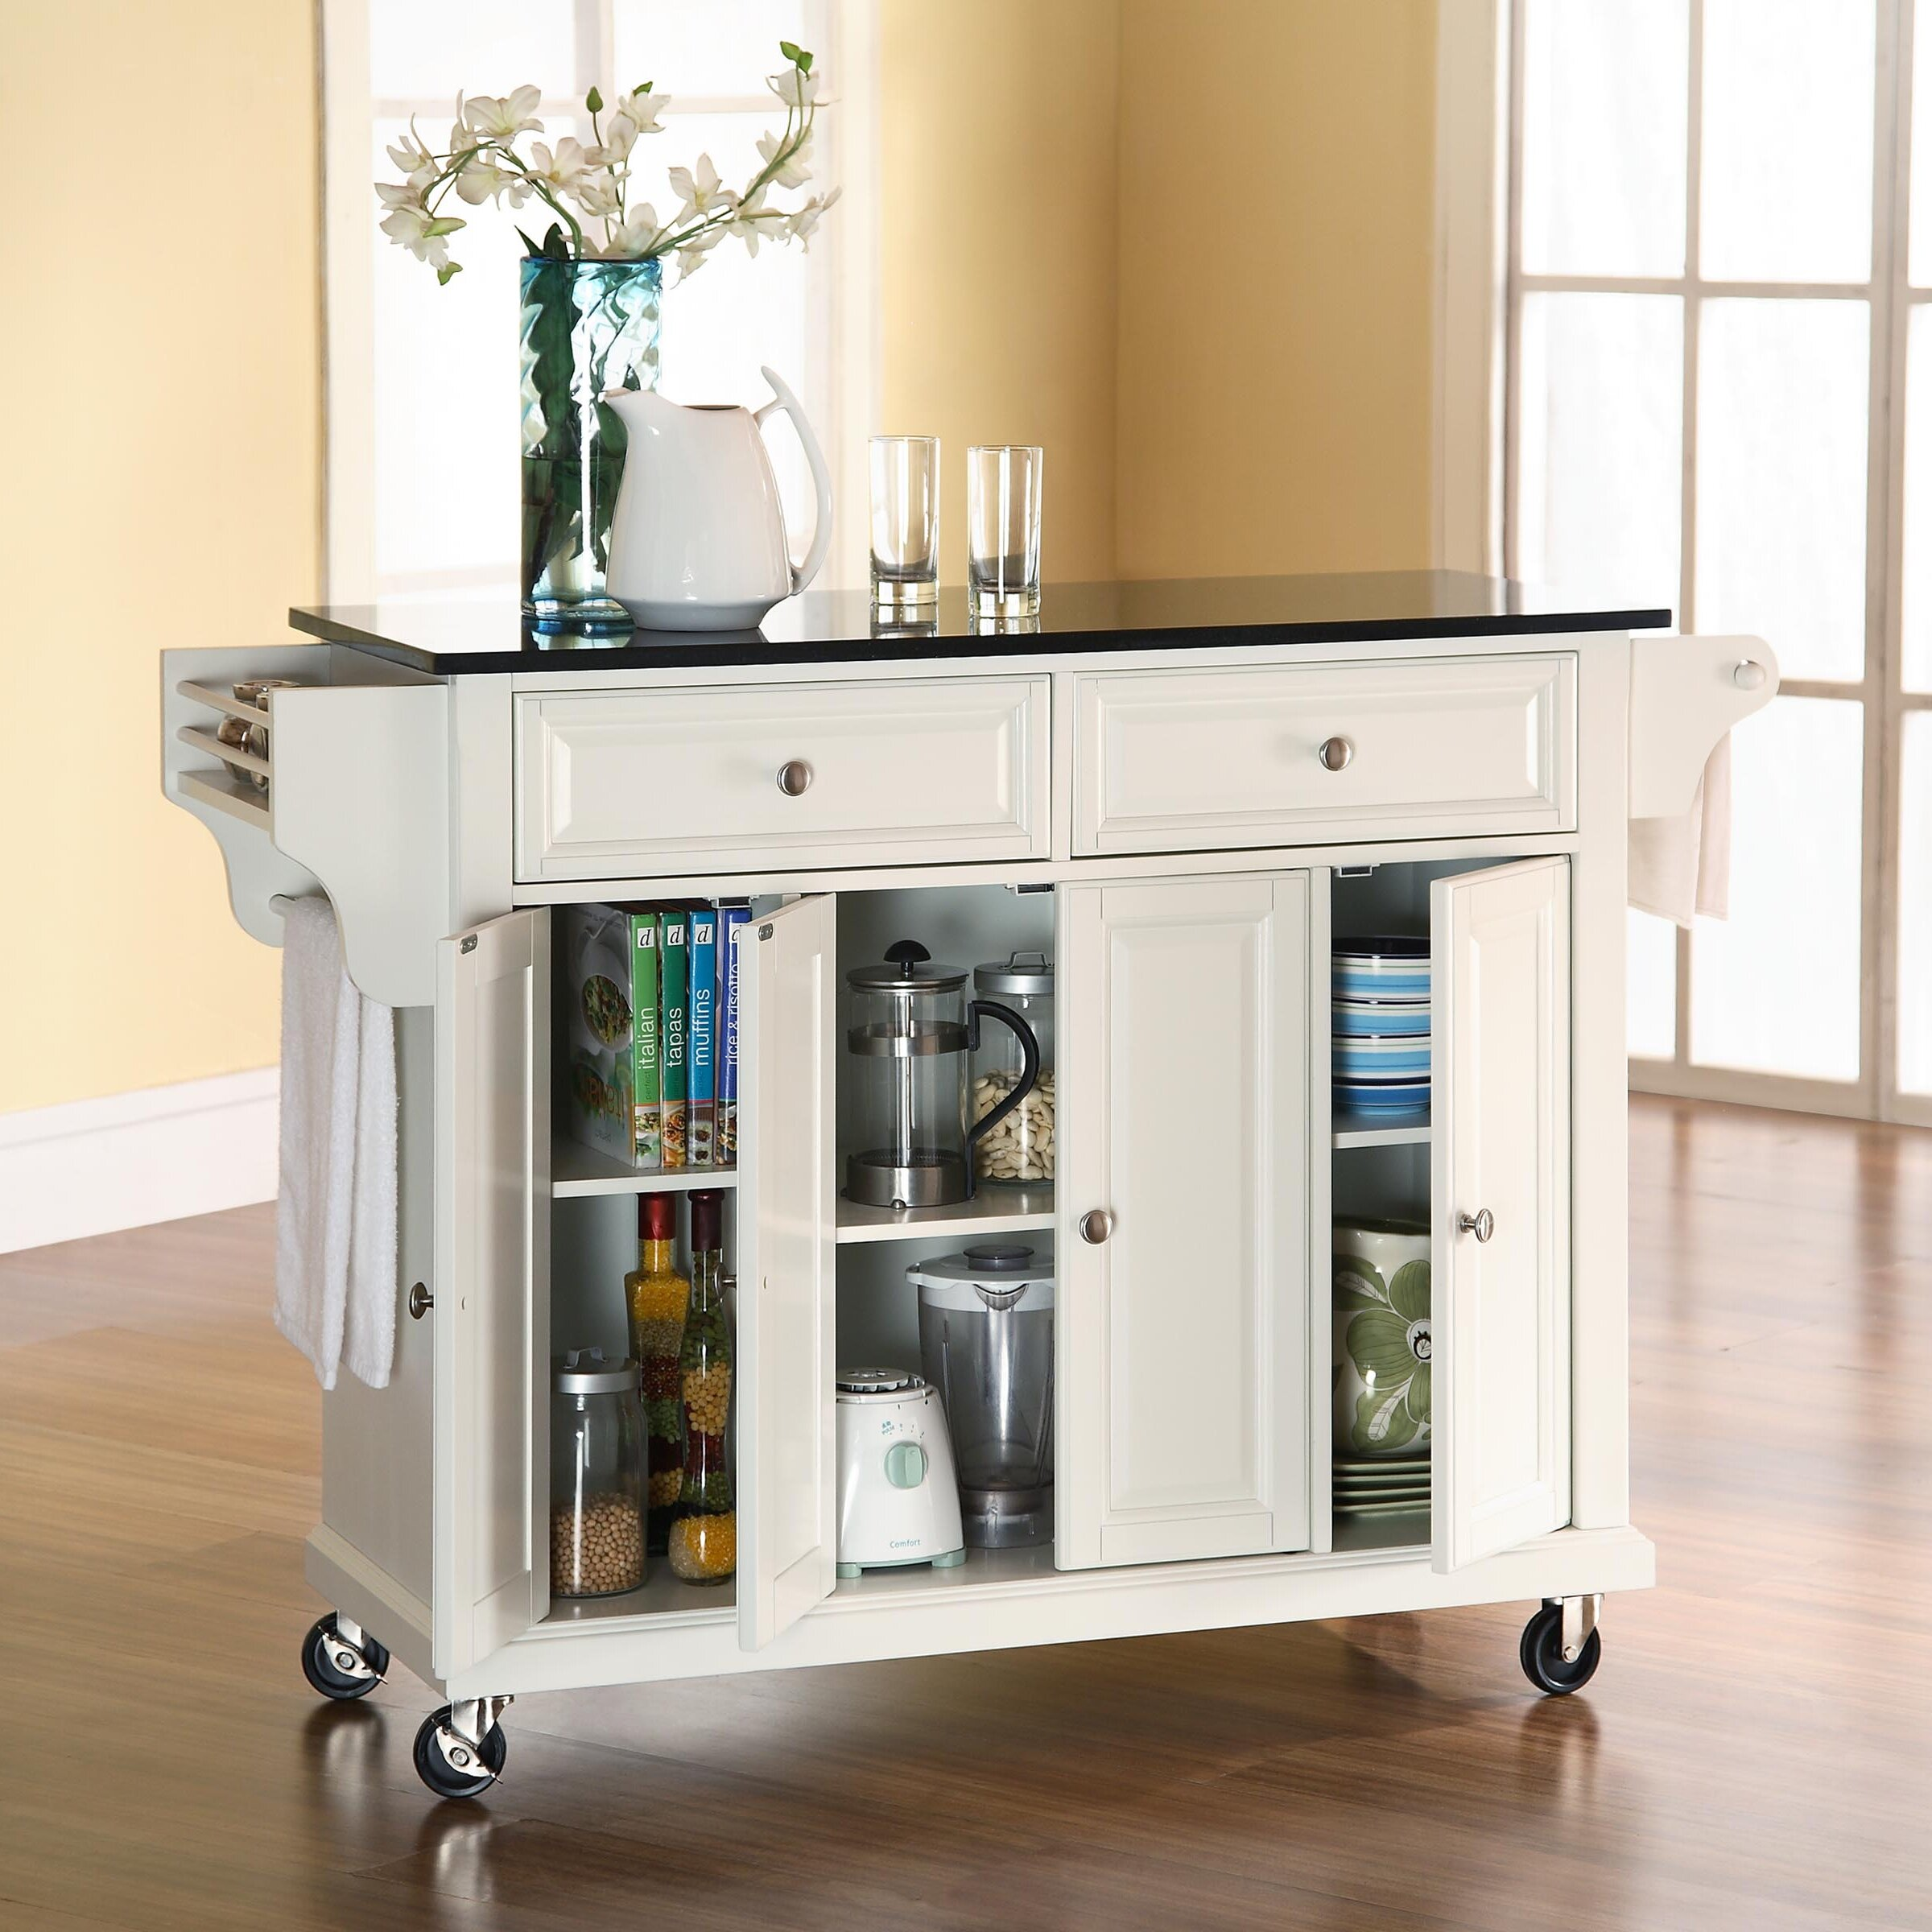 Darby home co pottstown kitchen island with granite top for Kitchen units on wheels